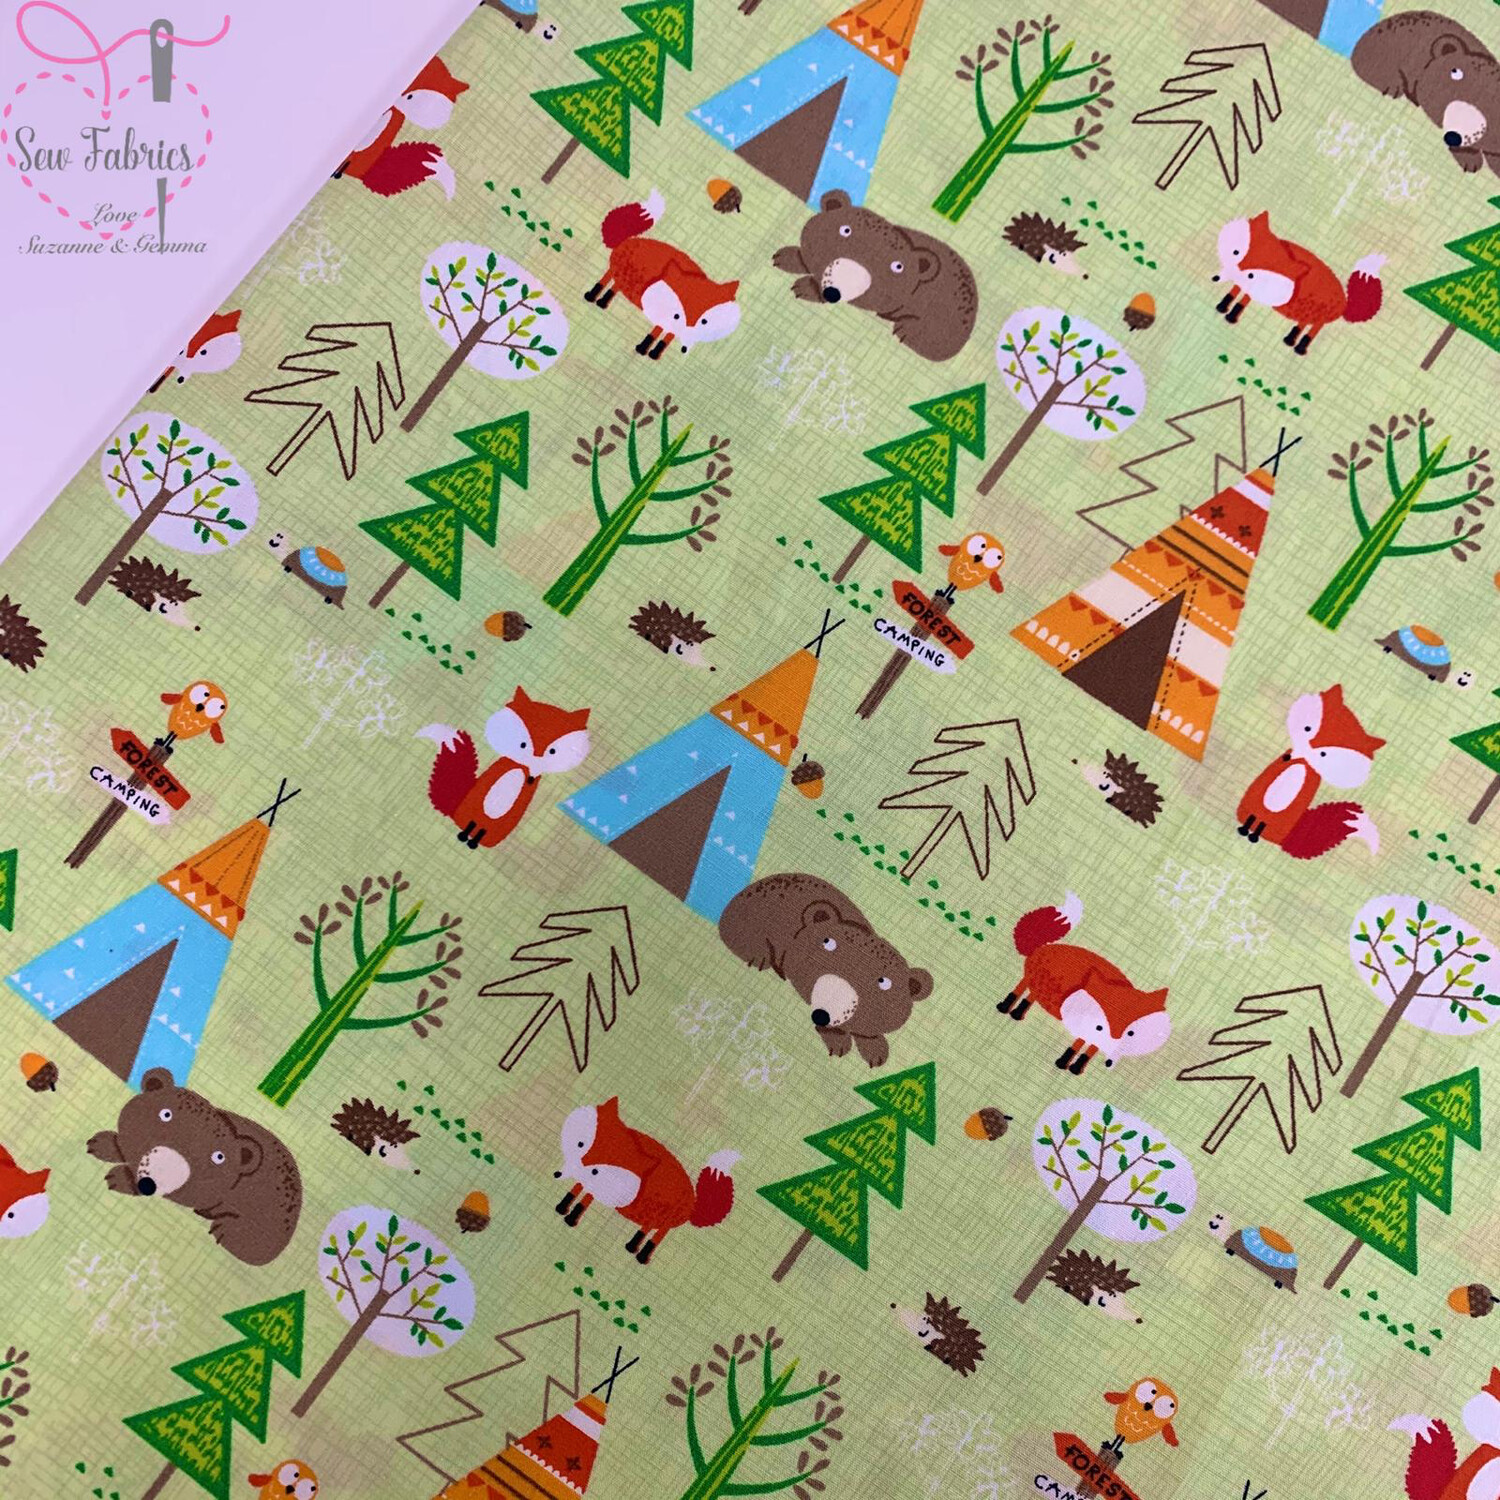 Rose & Hubble Summer Green Forest Camping Woodland Animal Print 100% Cotton Poplin Fabric